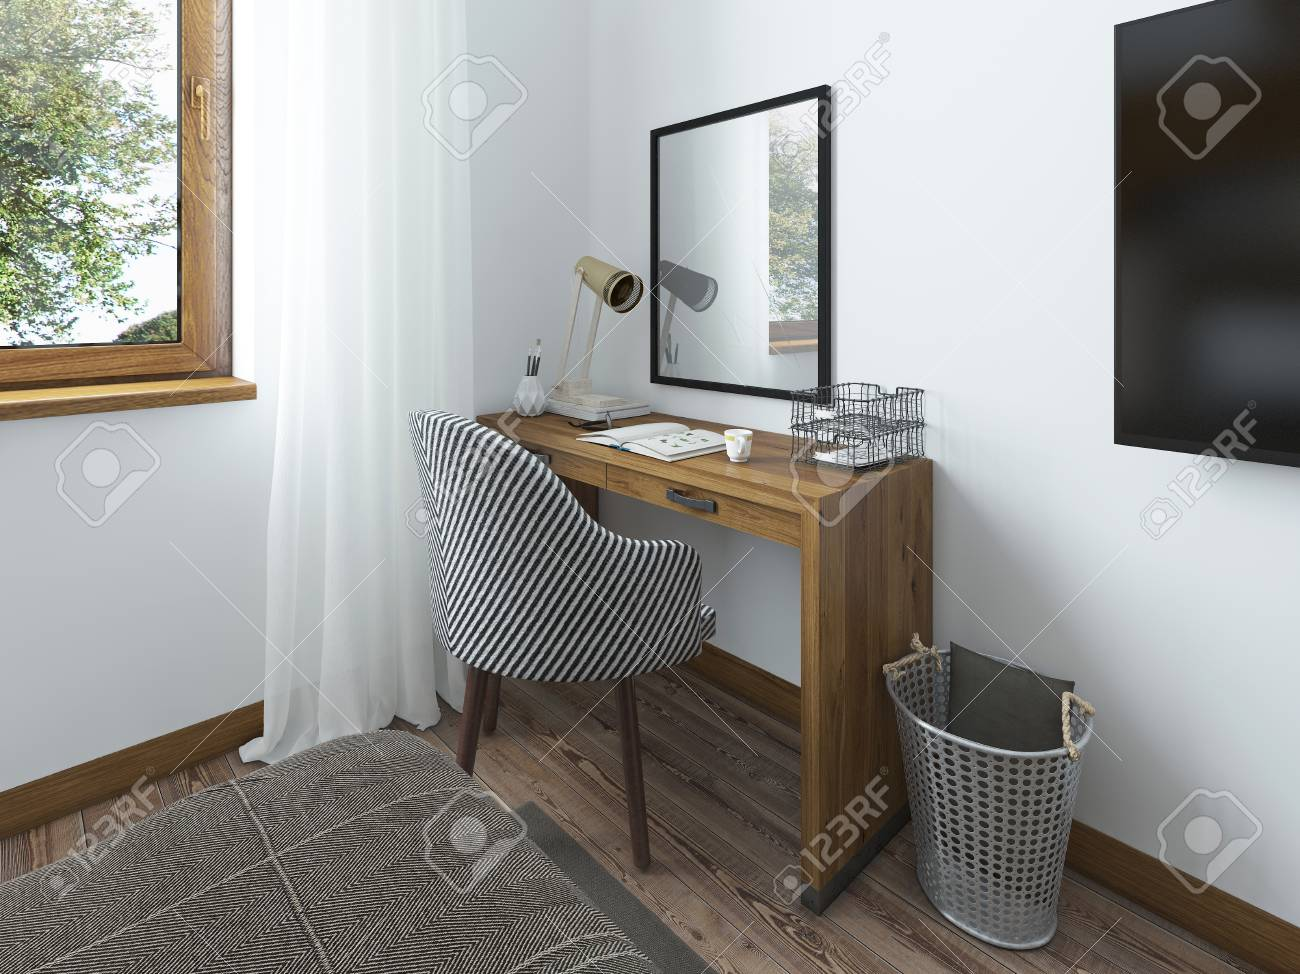 Above The Table Hangs A Mirror On The Desk Working Papers And Decor.  Dressing Table In The Bedroom In The Loft. 3D Render.